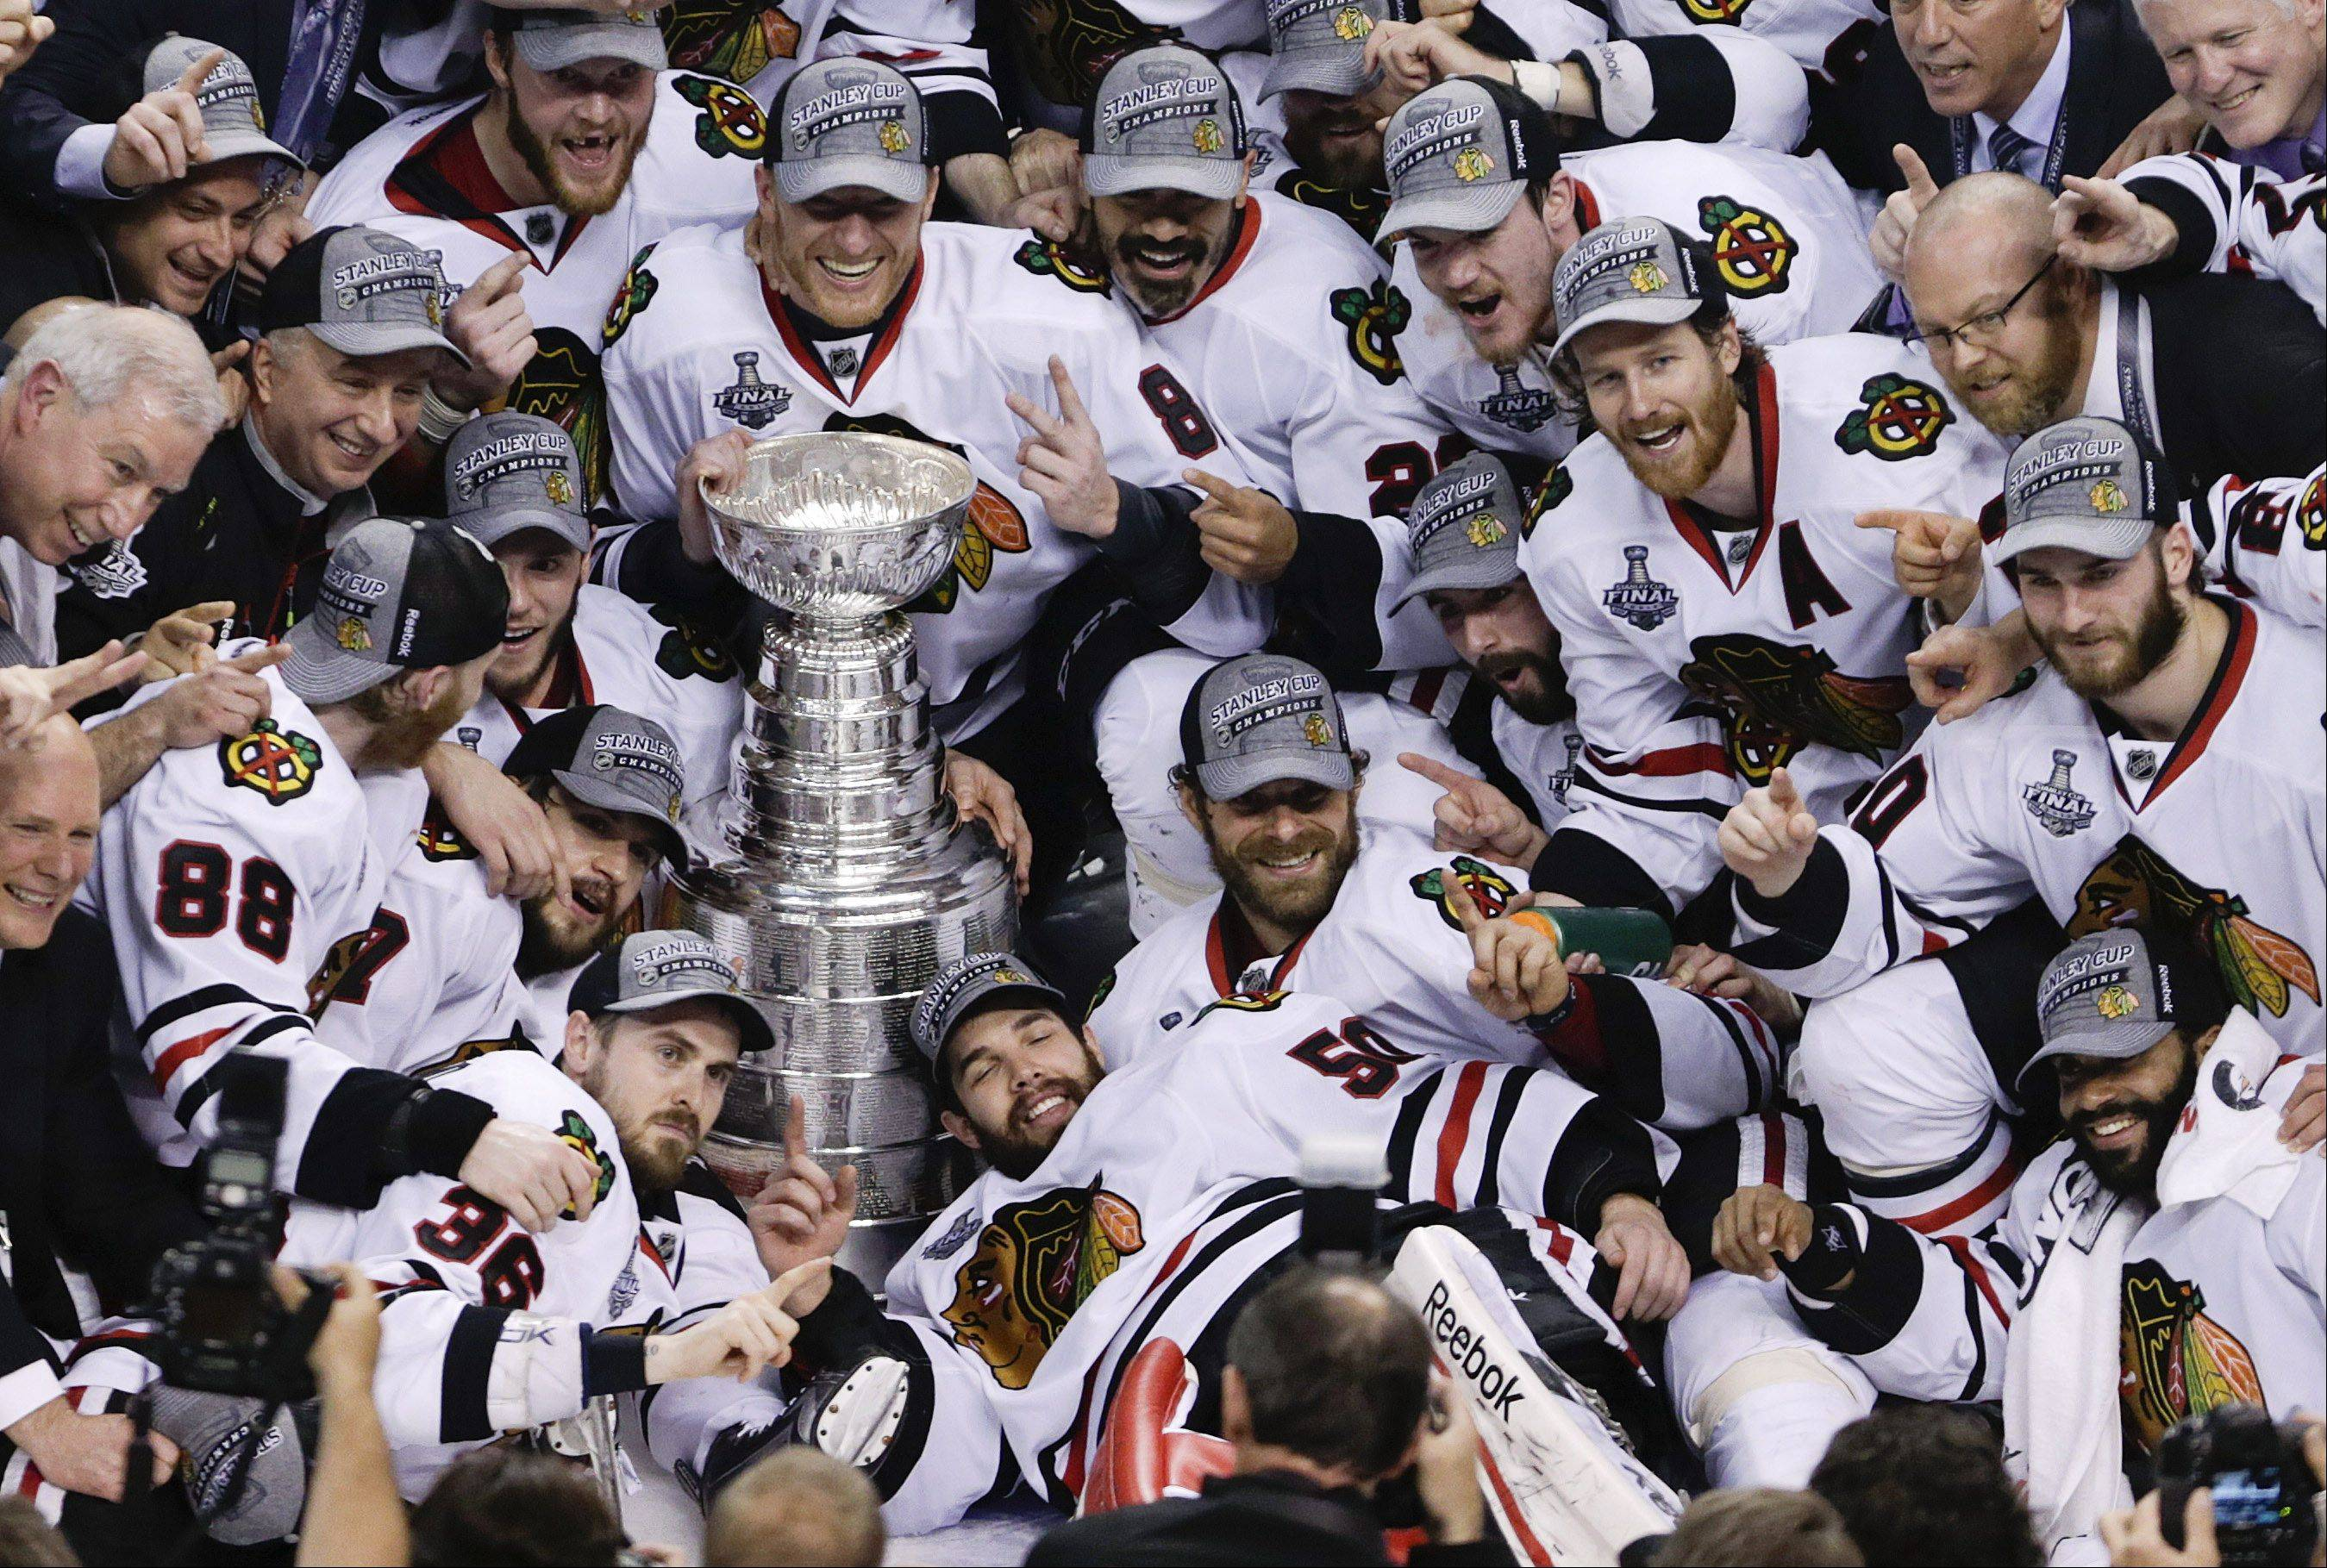 The Chicago Blackhawks pose with the Stanley Cup after beating the Boston Bruins in Game 6 of the NHL Stanley Cup Finals, Monday, June 24, 2013, in Boston.